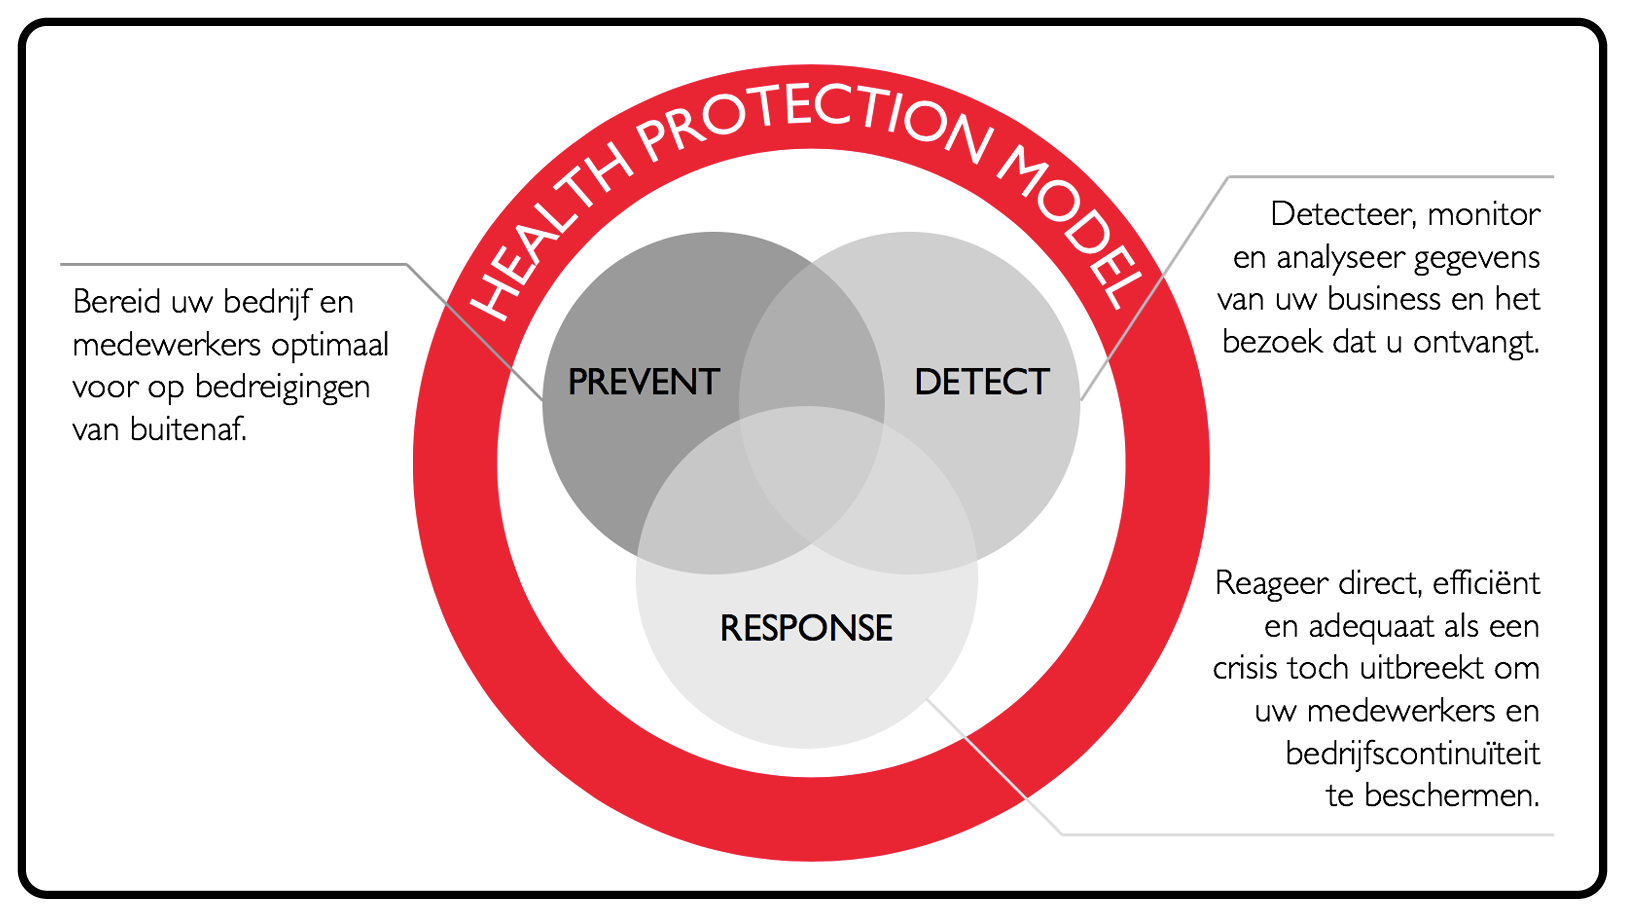 G4S Health Protection model